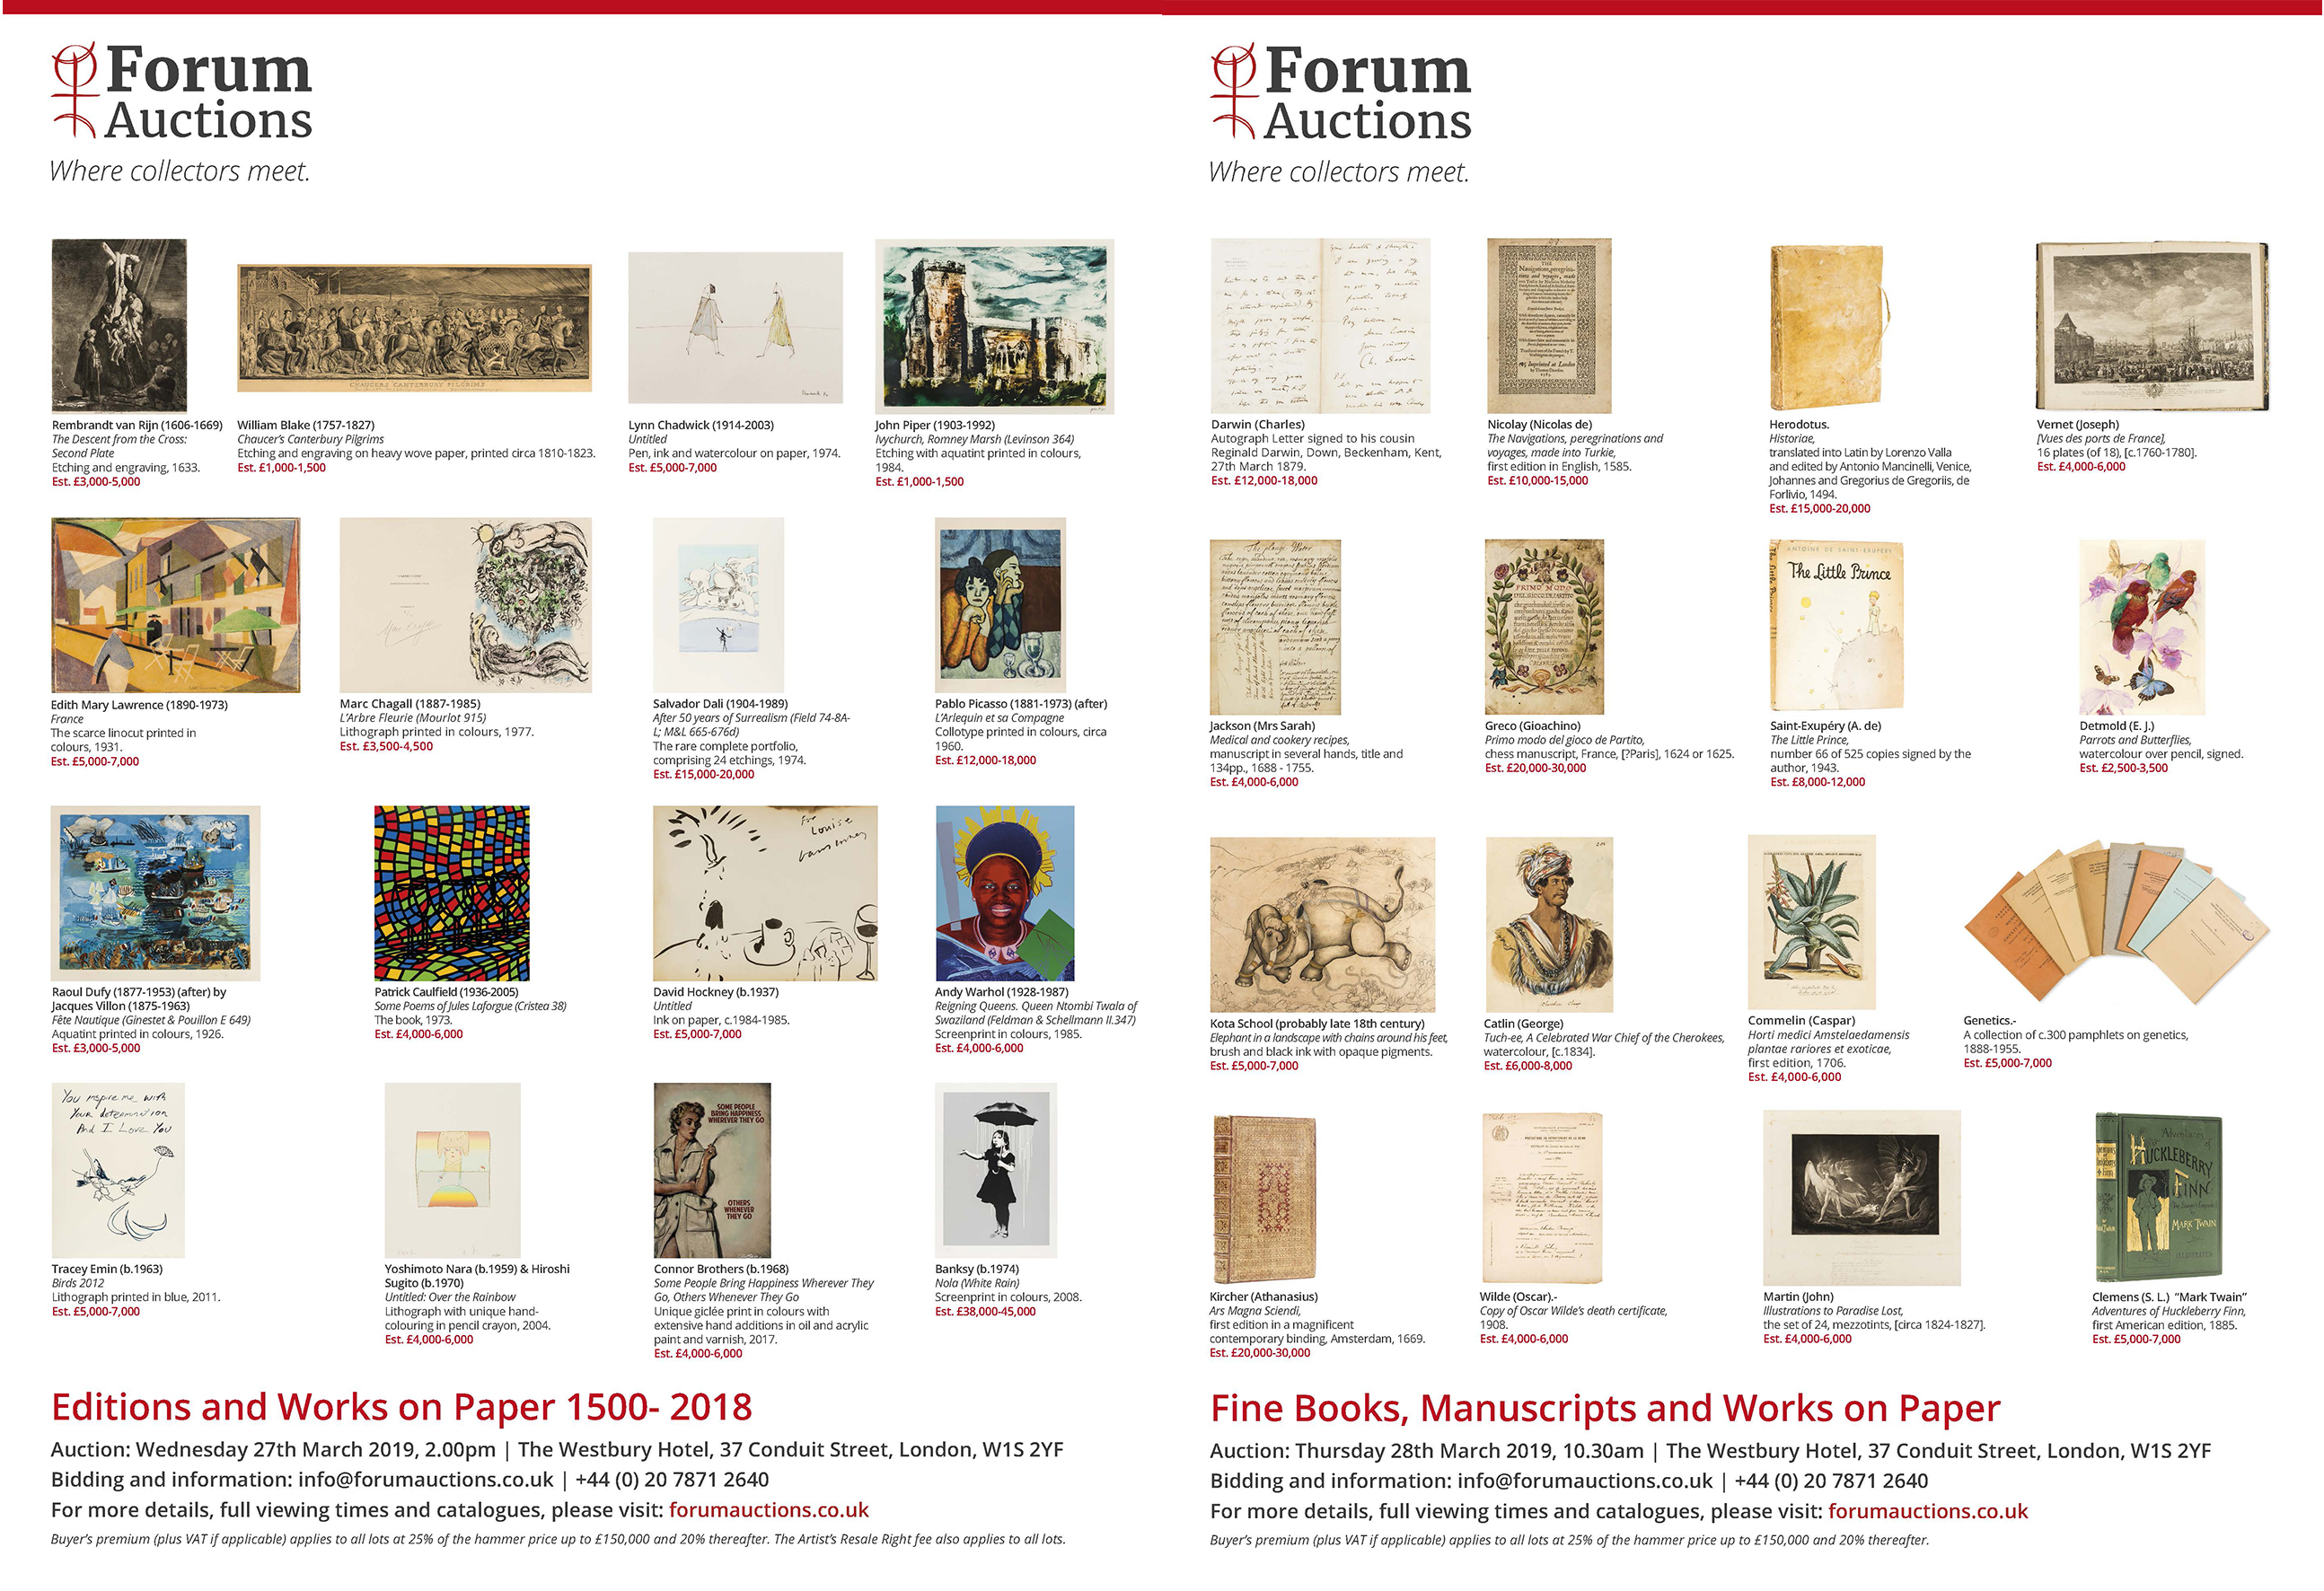 Forum - Editions, Works on Paper, Fine Books & Manuscripts.jpg